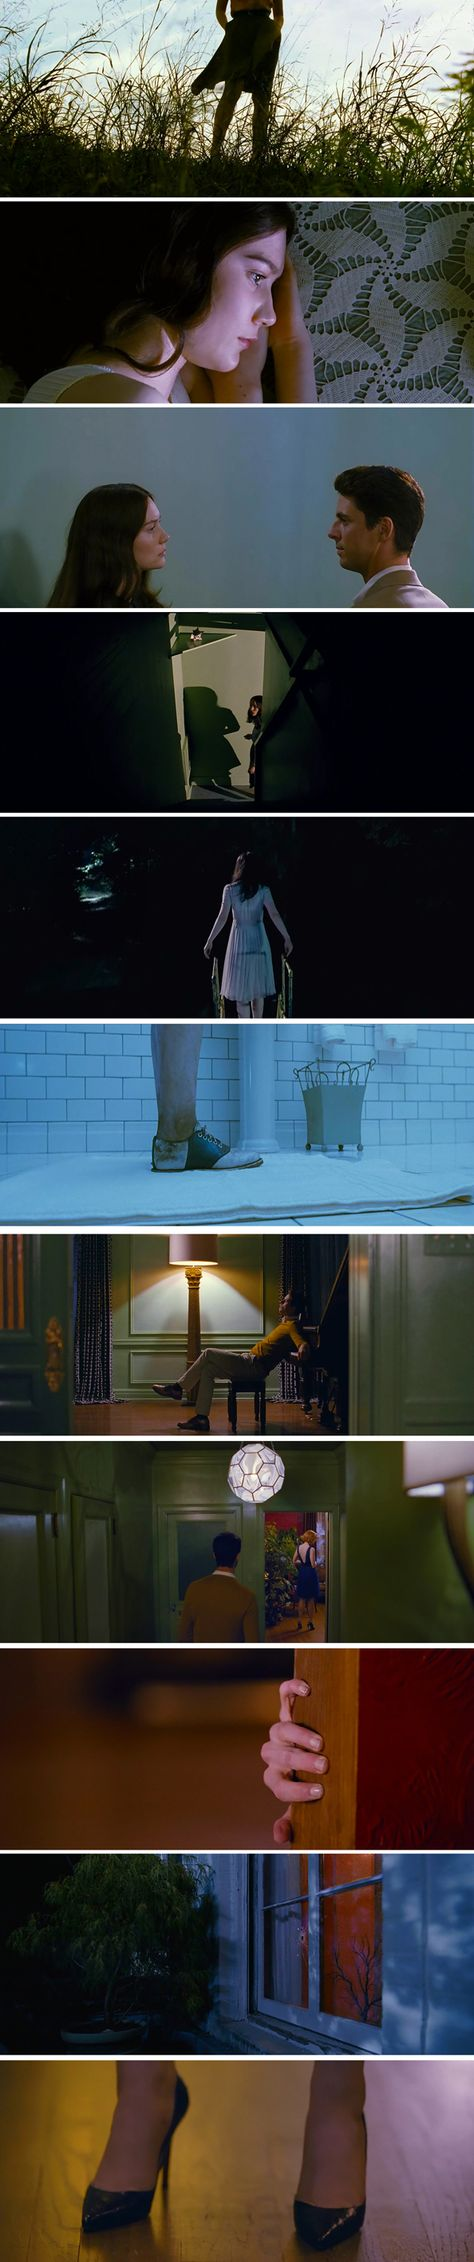 Stoker (2013) Instantly became a favourite film for me. I love so many things about it and the cinematography is beautiful!